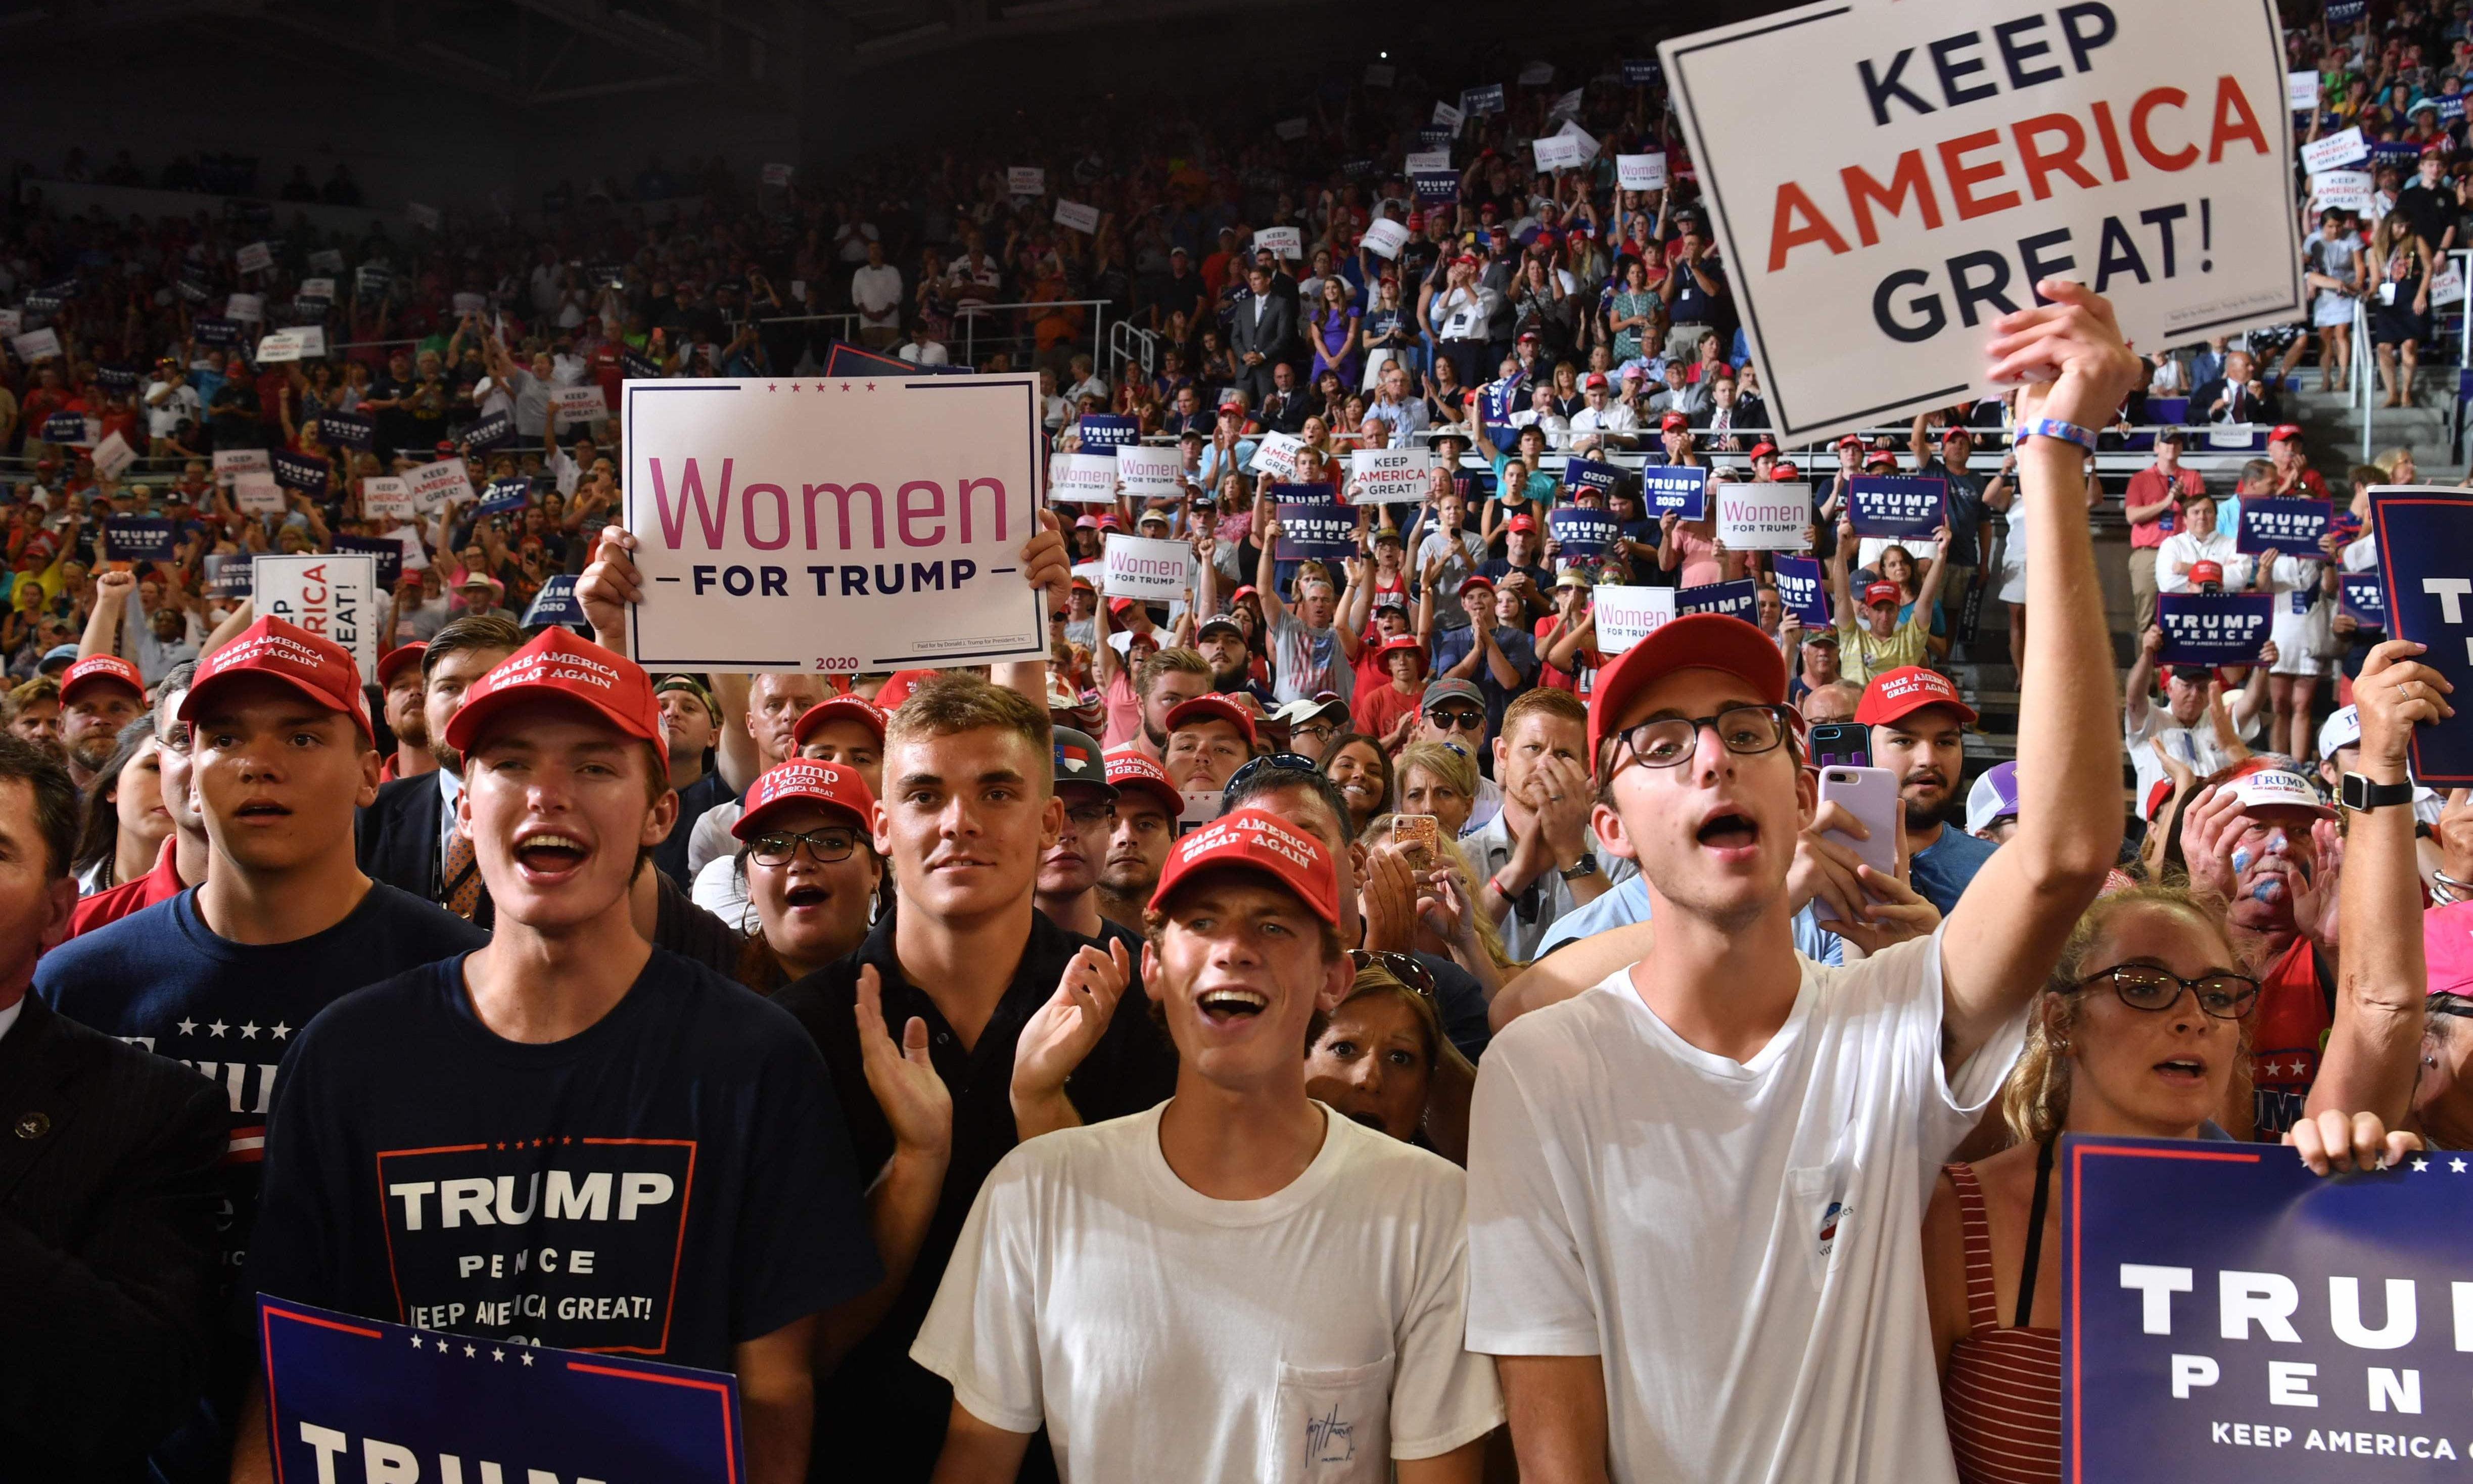 Republicans mostly silent after Trump rally racist chants aimed at Ilhan Omar